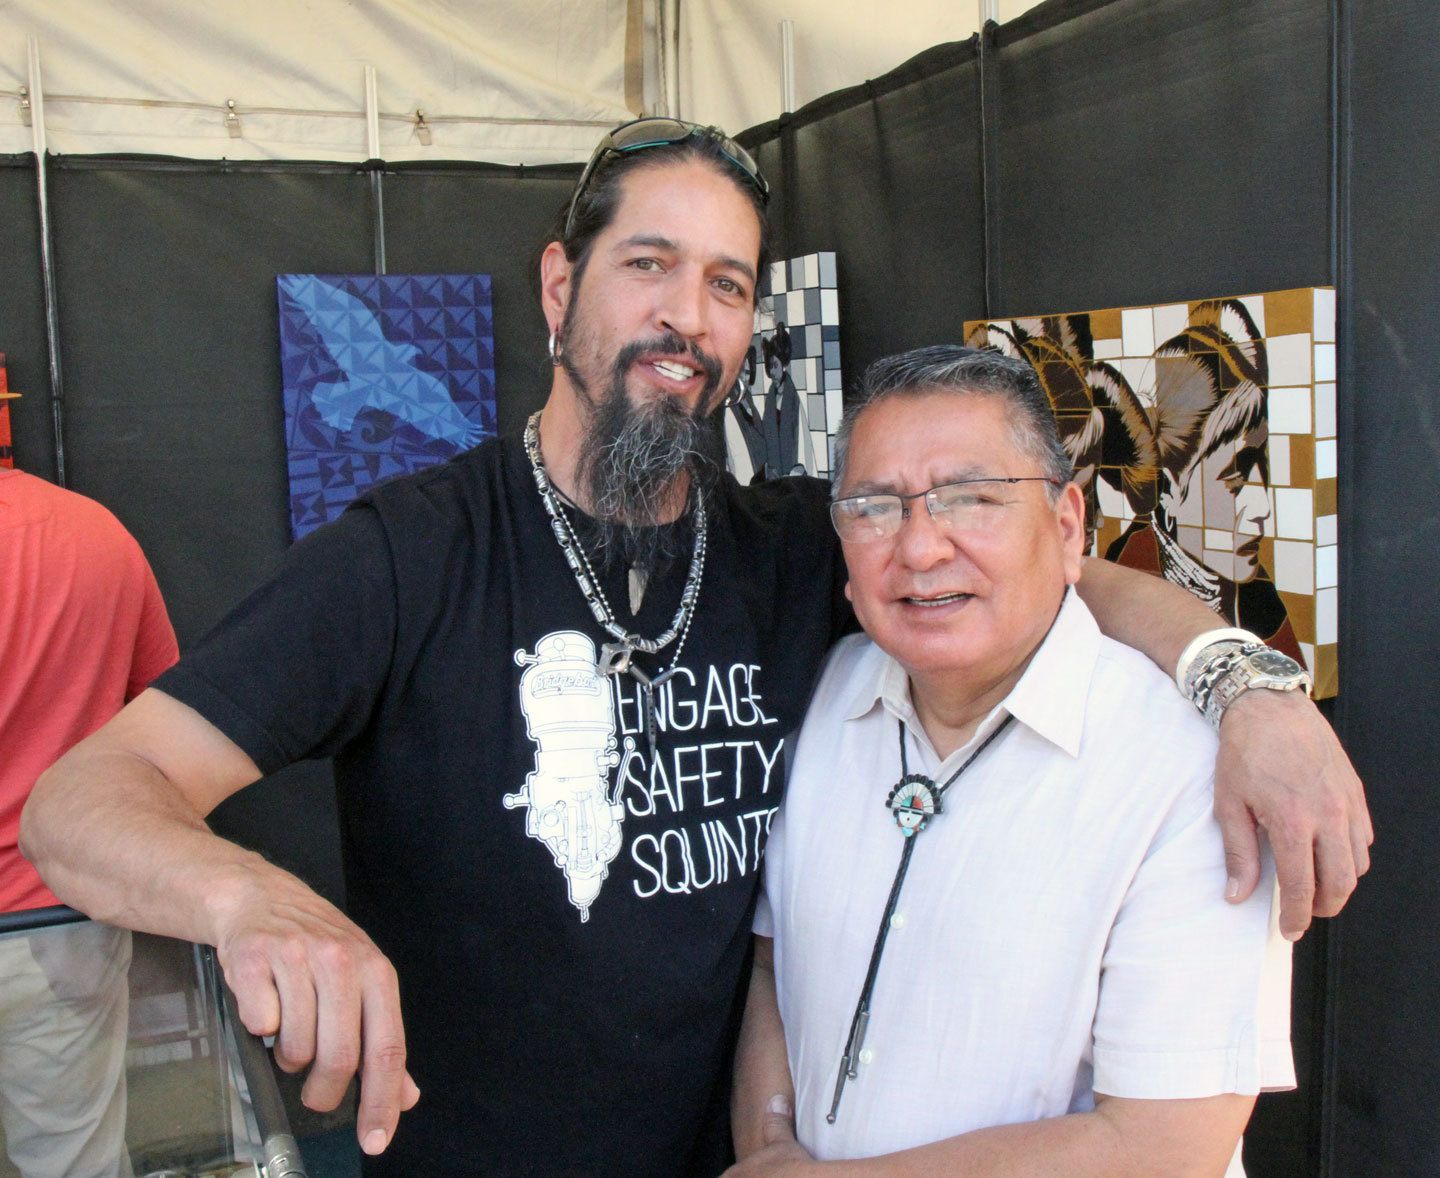 PAT PRUITT AND RAYMOND YAZZIE, two outstanding Native jewelers who approach the medium from different angles. Pruitt uses modern materials and technology to create precise works that are informed by traditional symbolism, while Yazzie makes lush jewelry which incorporates his own personal touch to traditional style. Raymond Yazzie was an award judge for this year's Best of Show.  Pruitt was featured in Ornament Volume 37.1, while Yazzie and his brother Lee were covered in an exhibition review of their work, Glittering World, done in Ornament Volume 38.4.   www.ornamentmagazine.org/shop/ornament-print-edition-volume-371   www.ornamentmagazine.org/shop/ornament-print-edition-volume-384